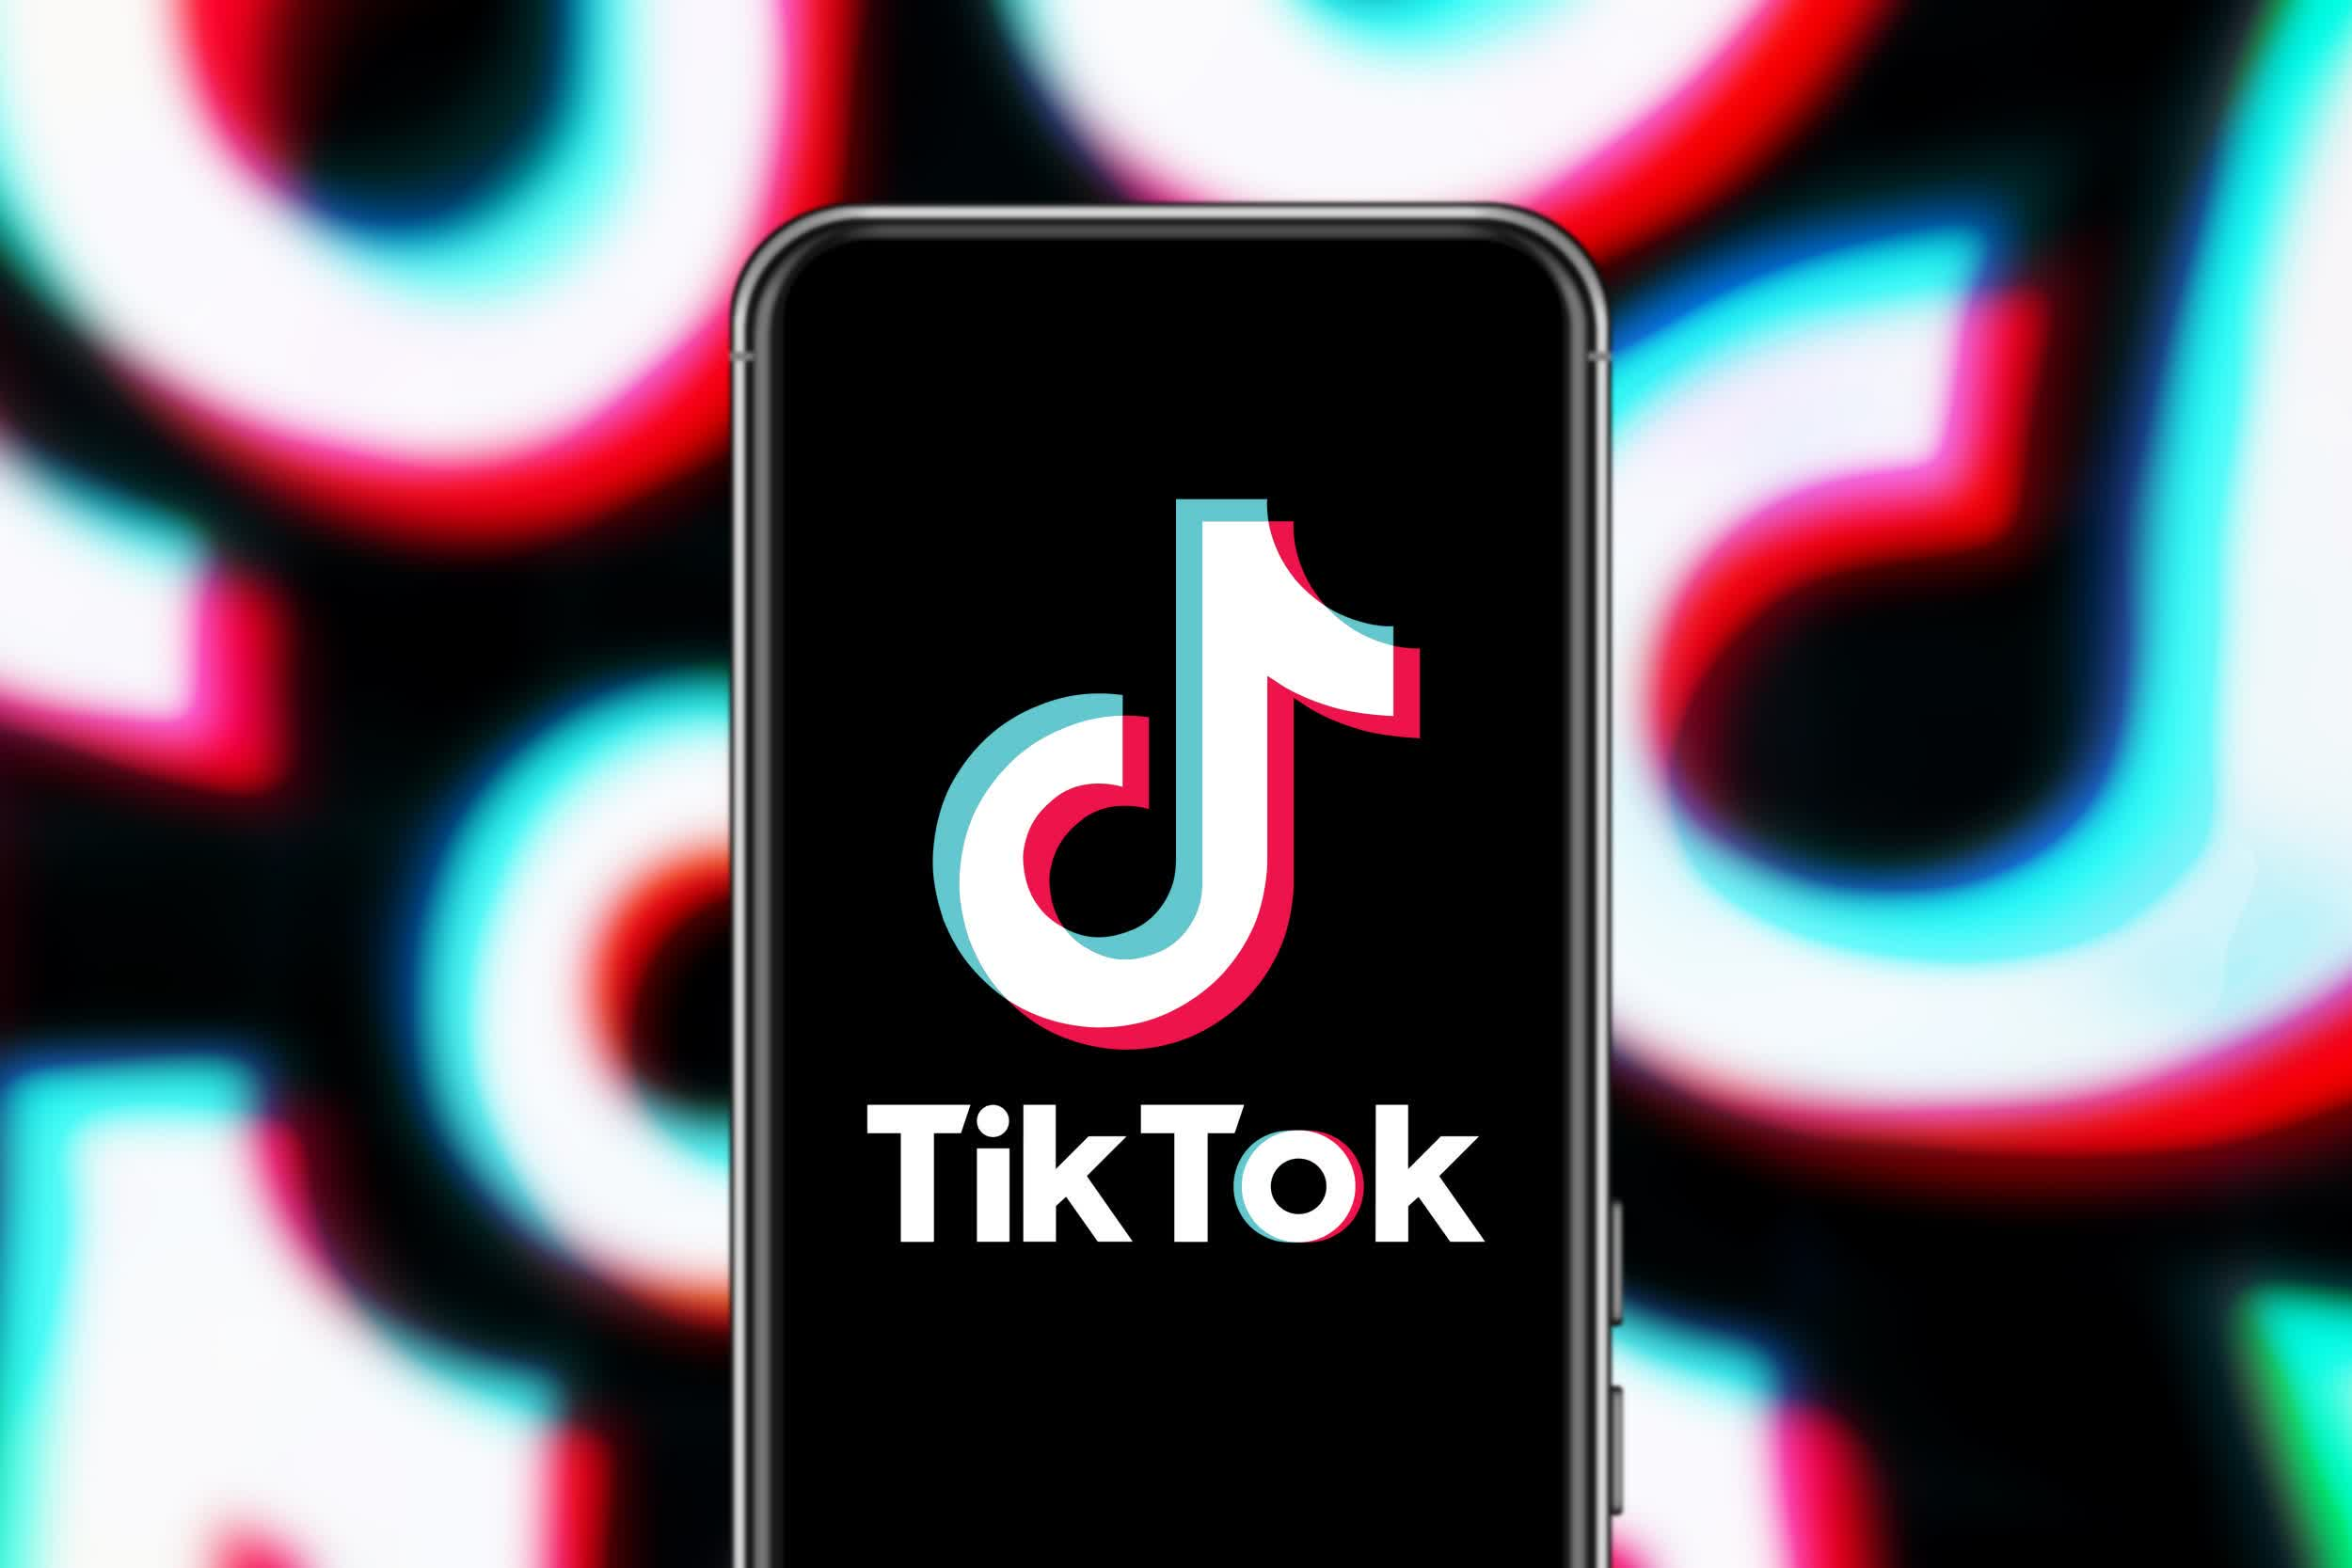 TikTok is adding more privacy protections for teens